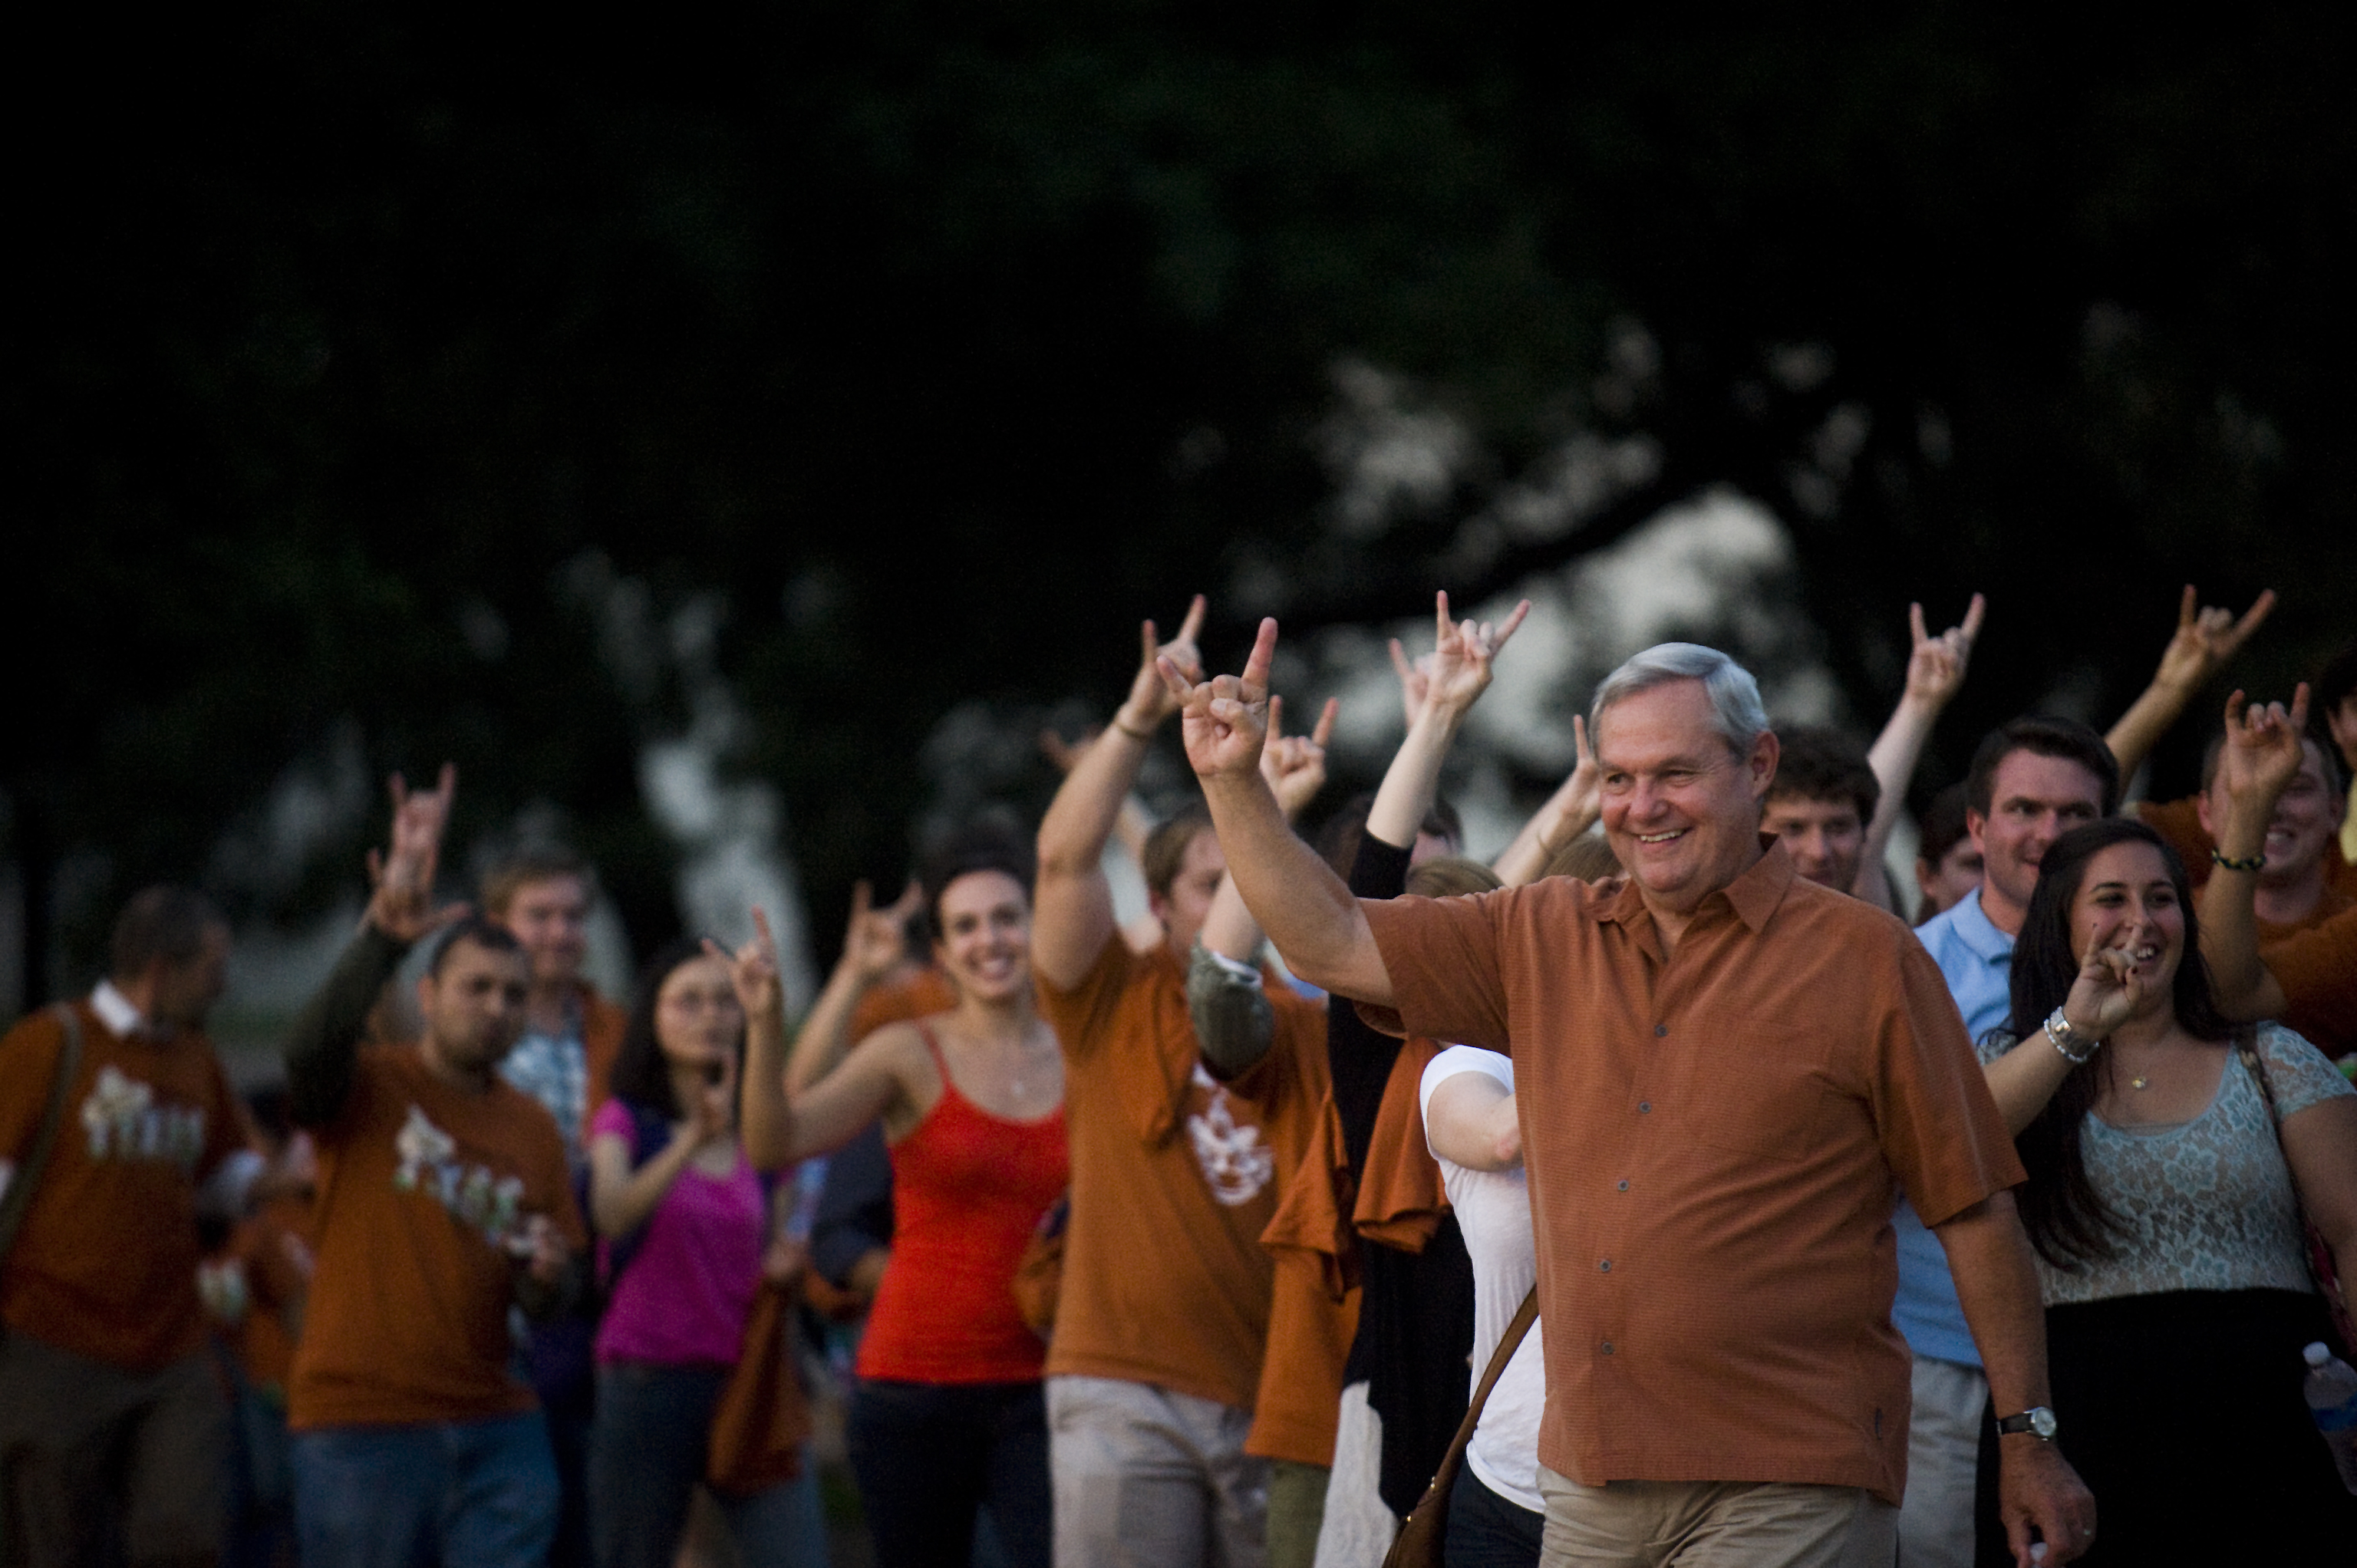 Dean Robert Hutchings leads the March to Main during Gone to Texas.